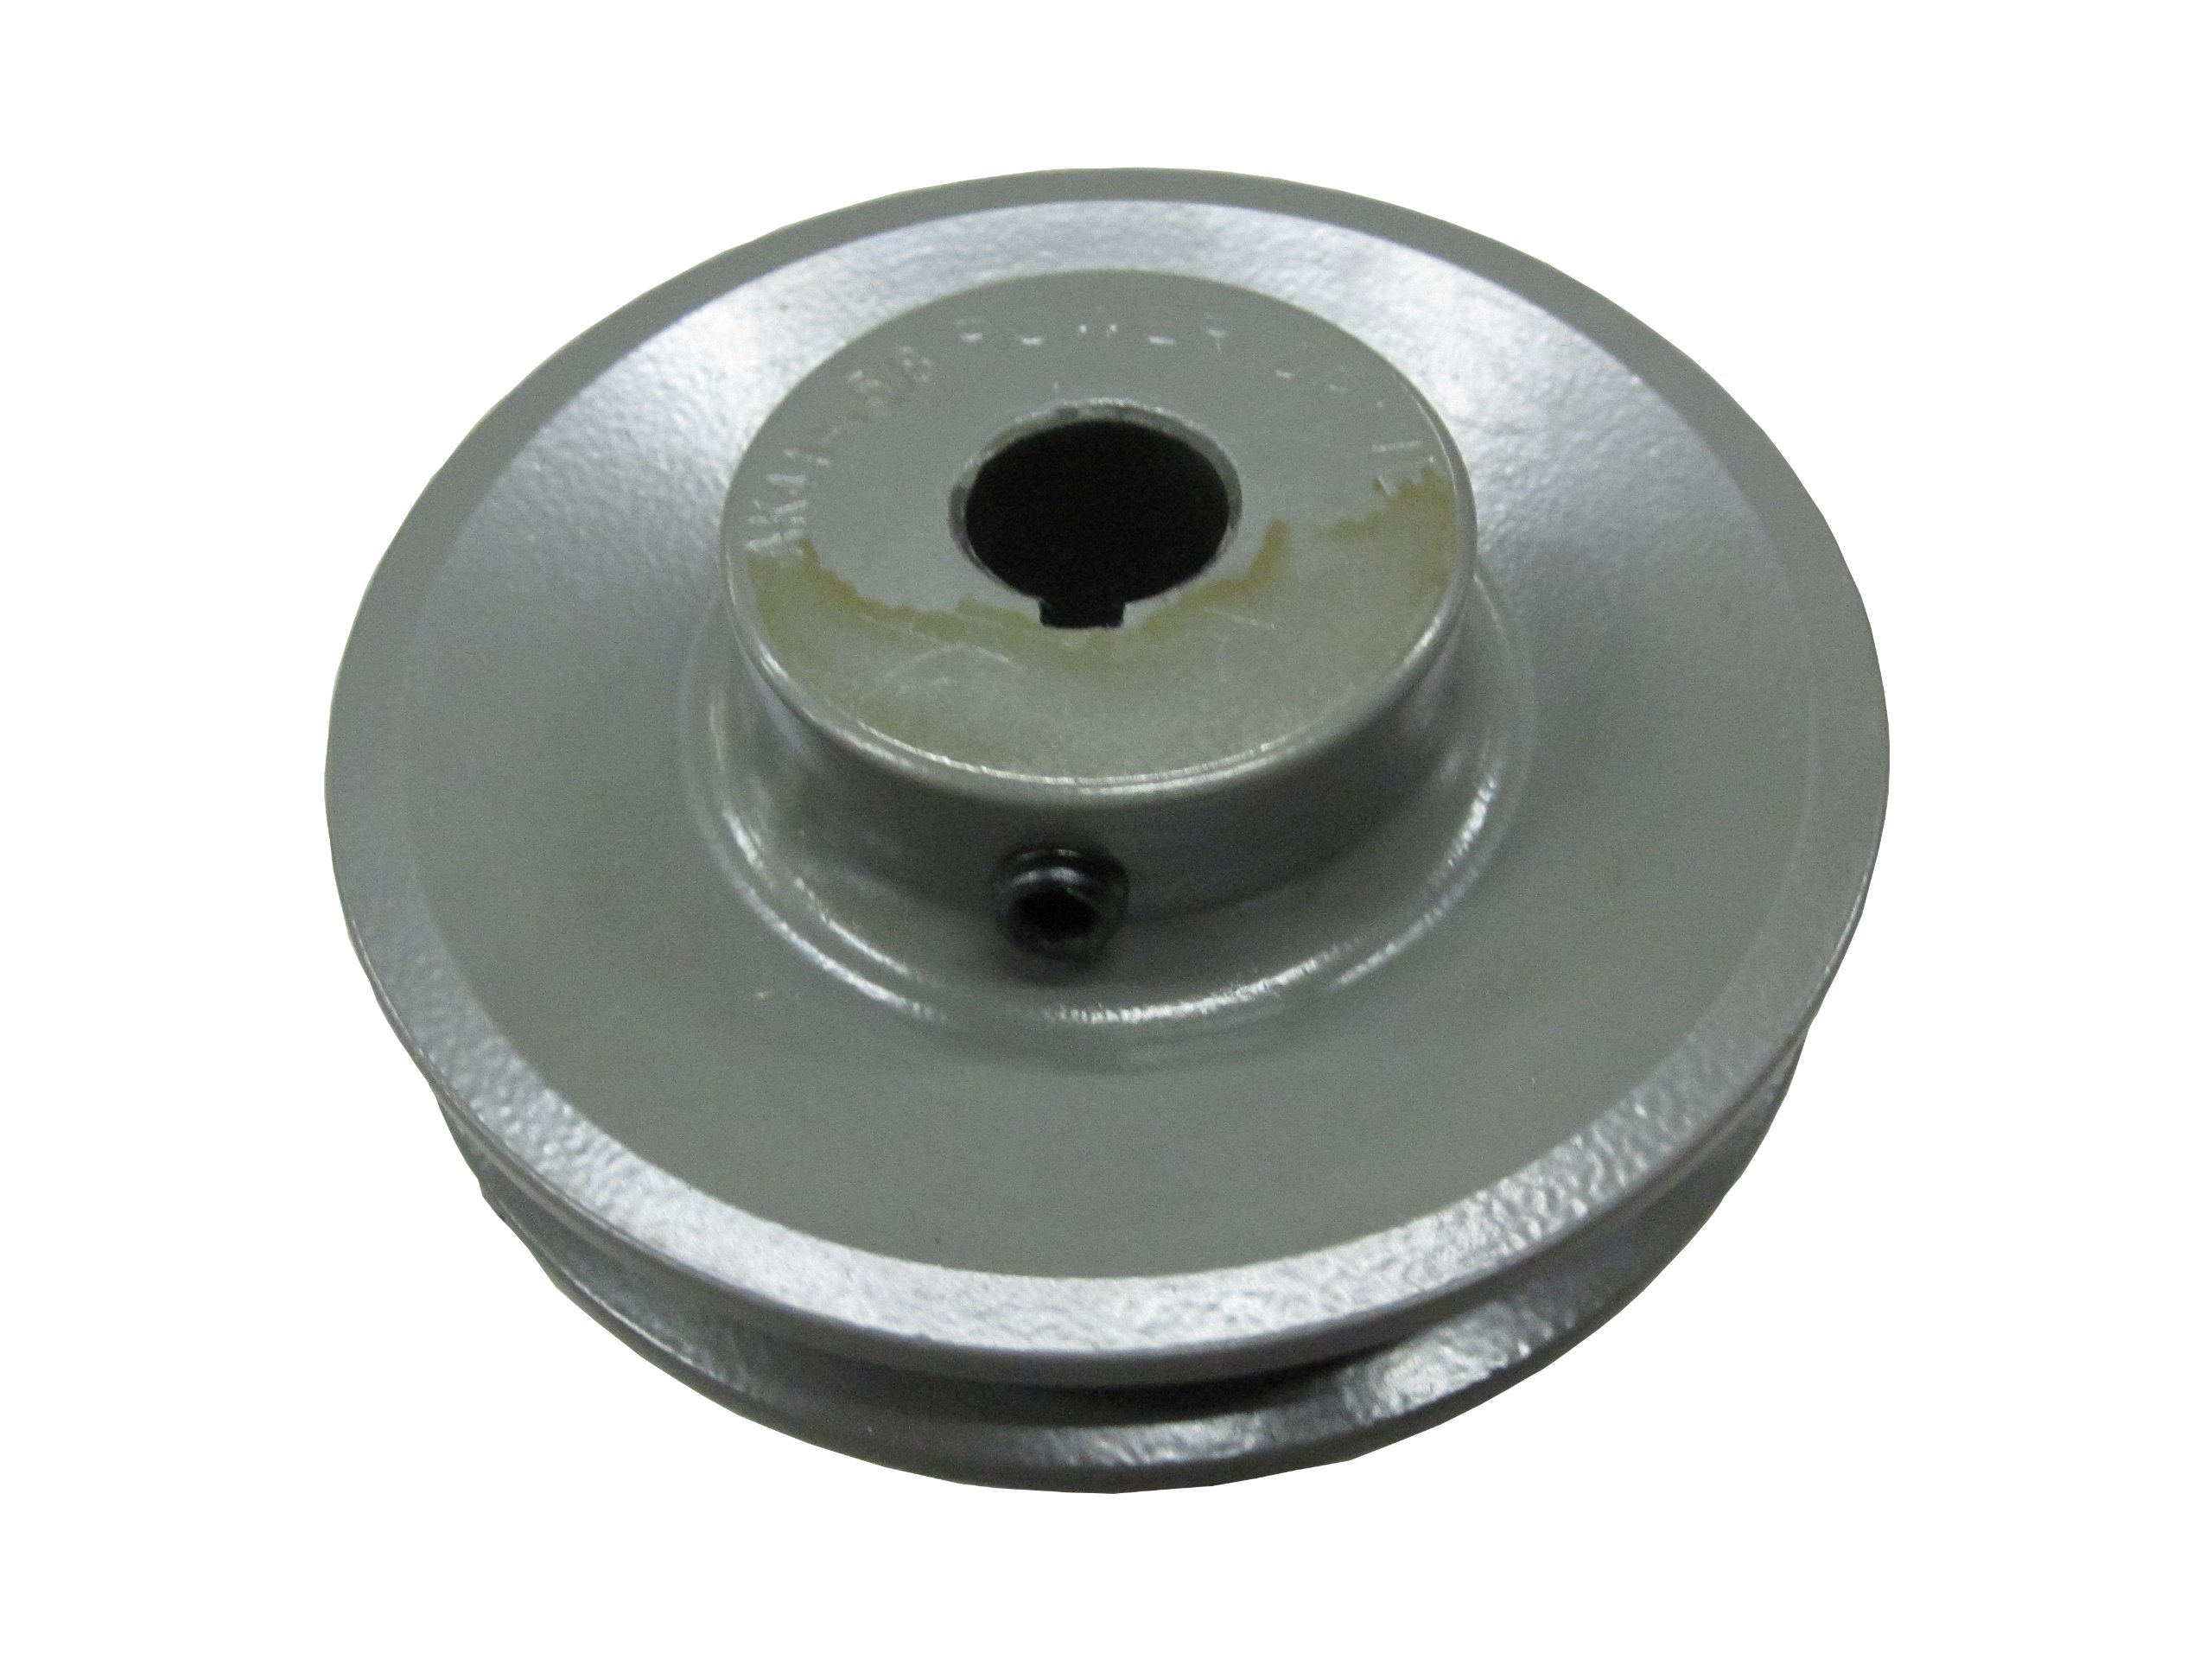 PolarCool 1011-2650 Replacement Fan Motor Pulley by Polarcool (Image #1)